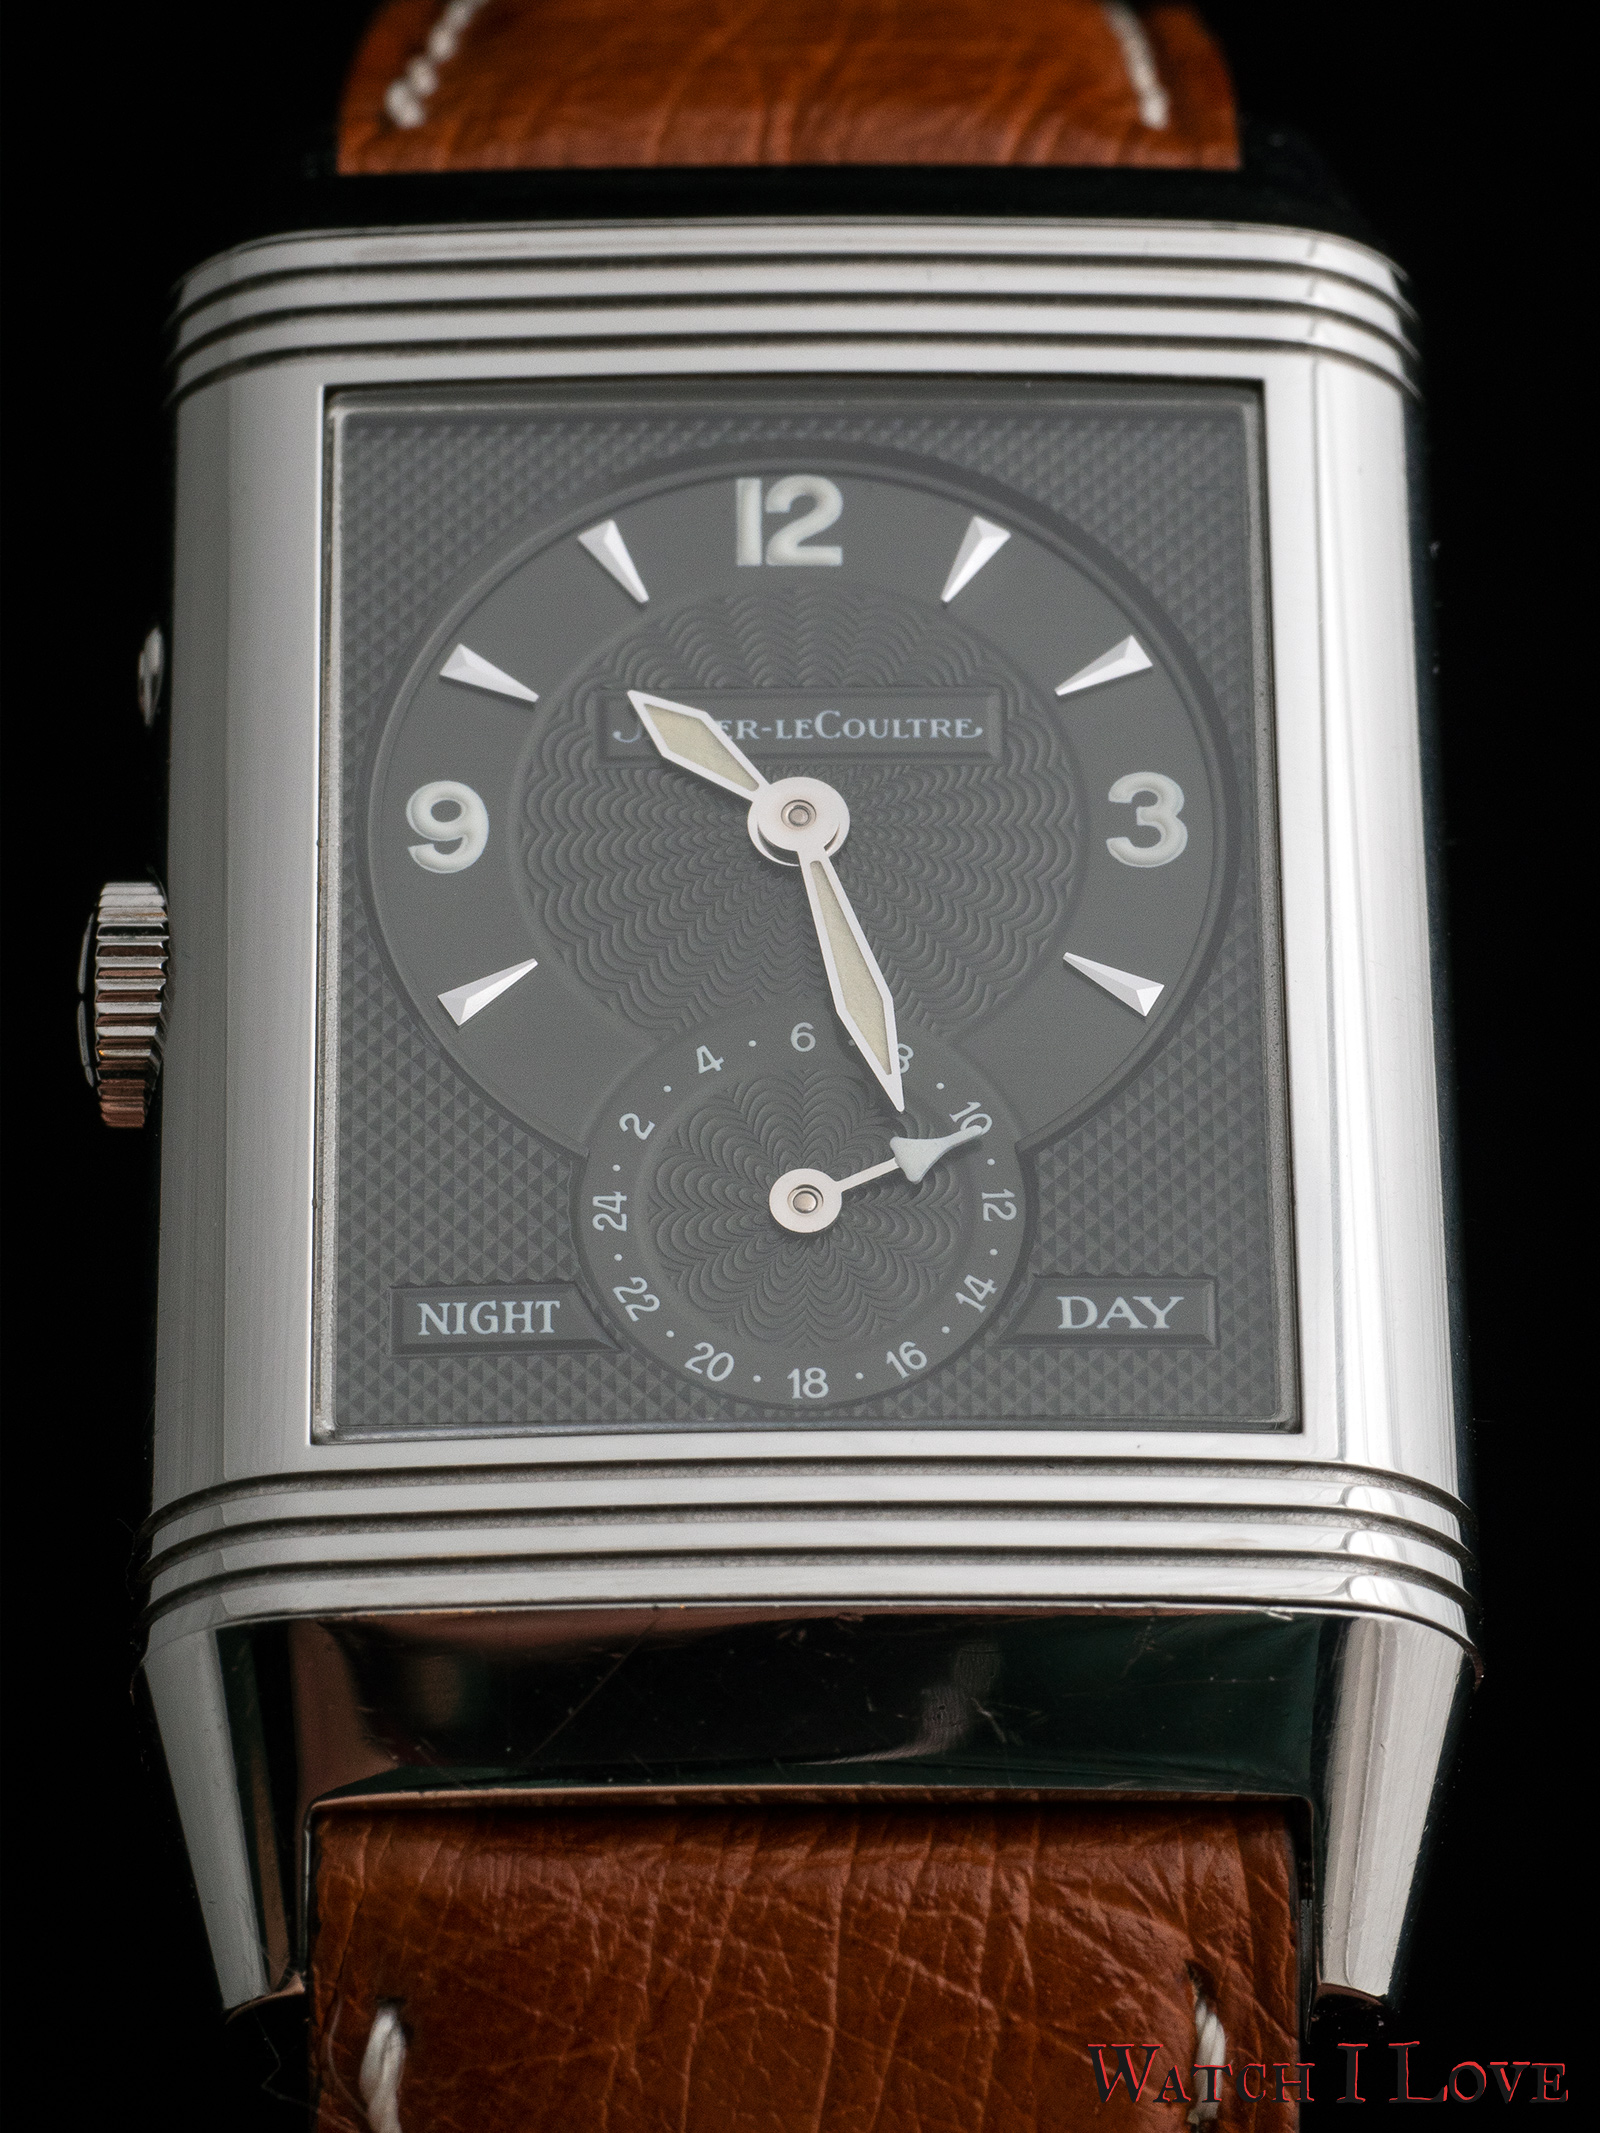 Jaeger-LeCoultre Reverso Duoface Night&day portait